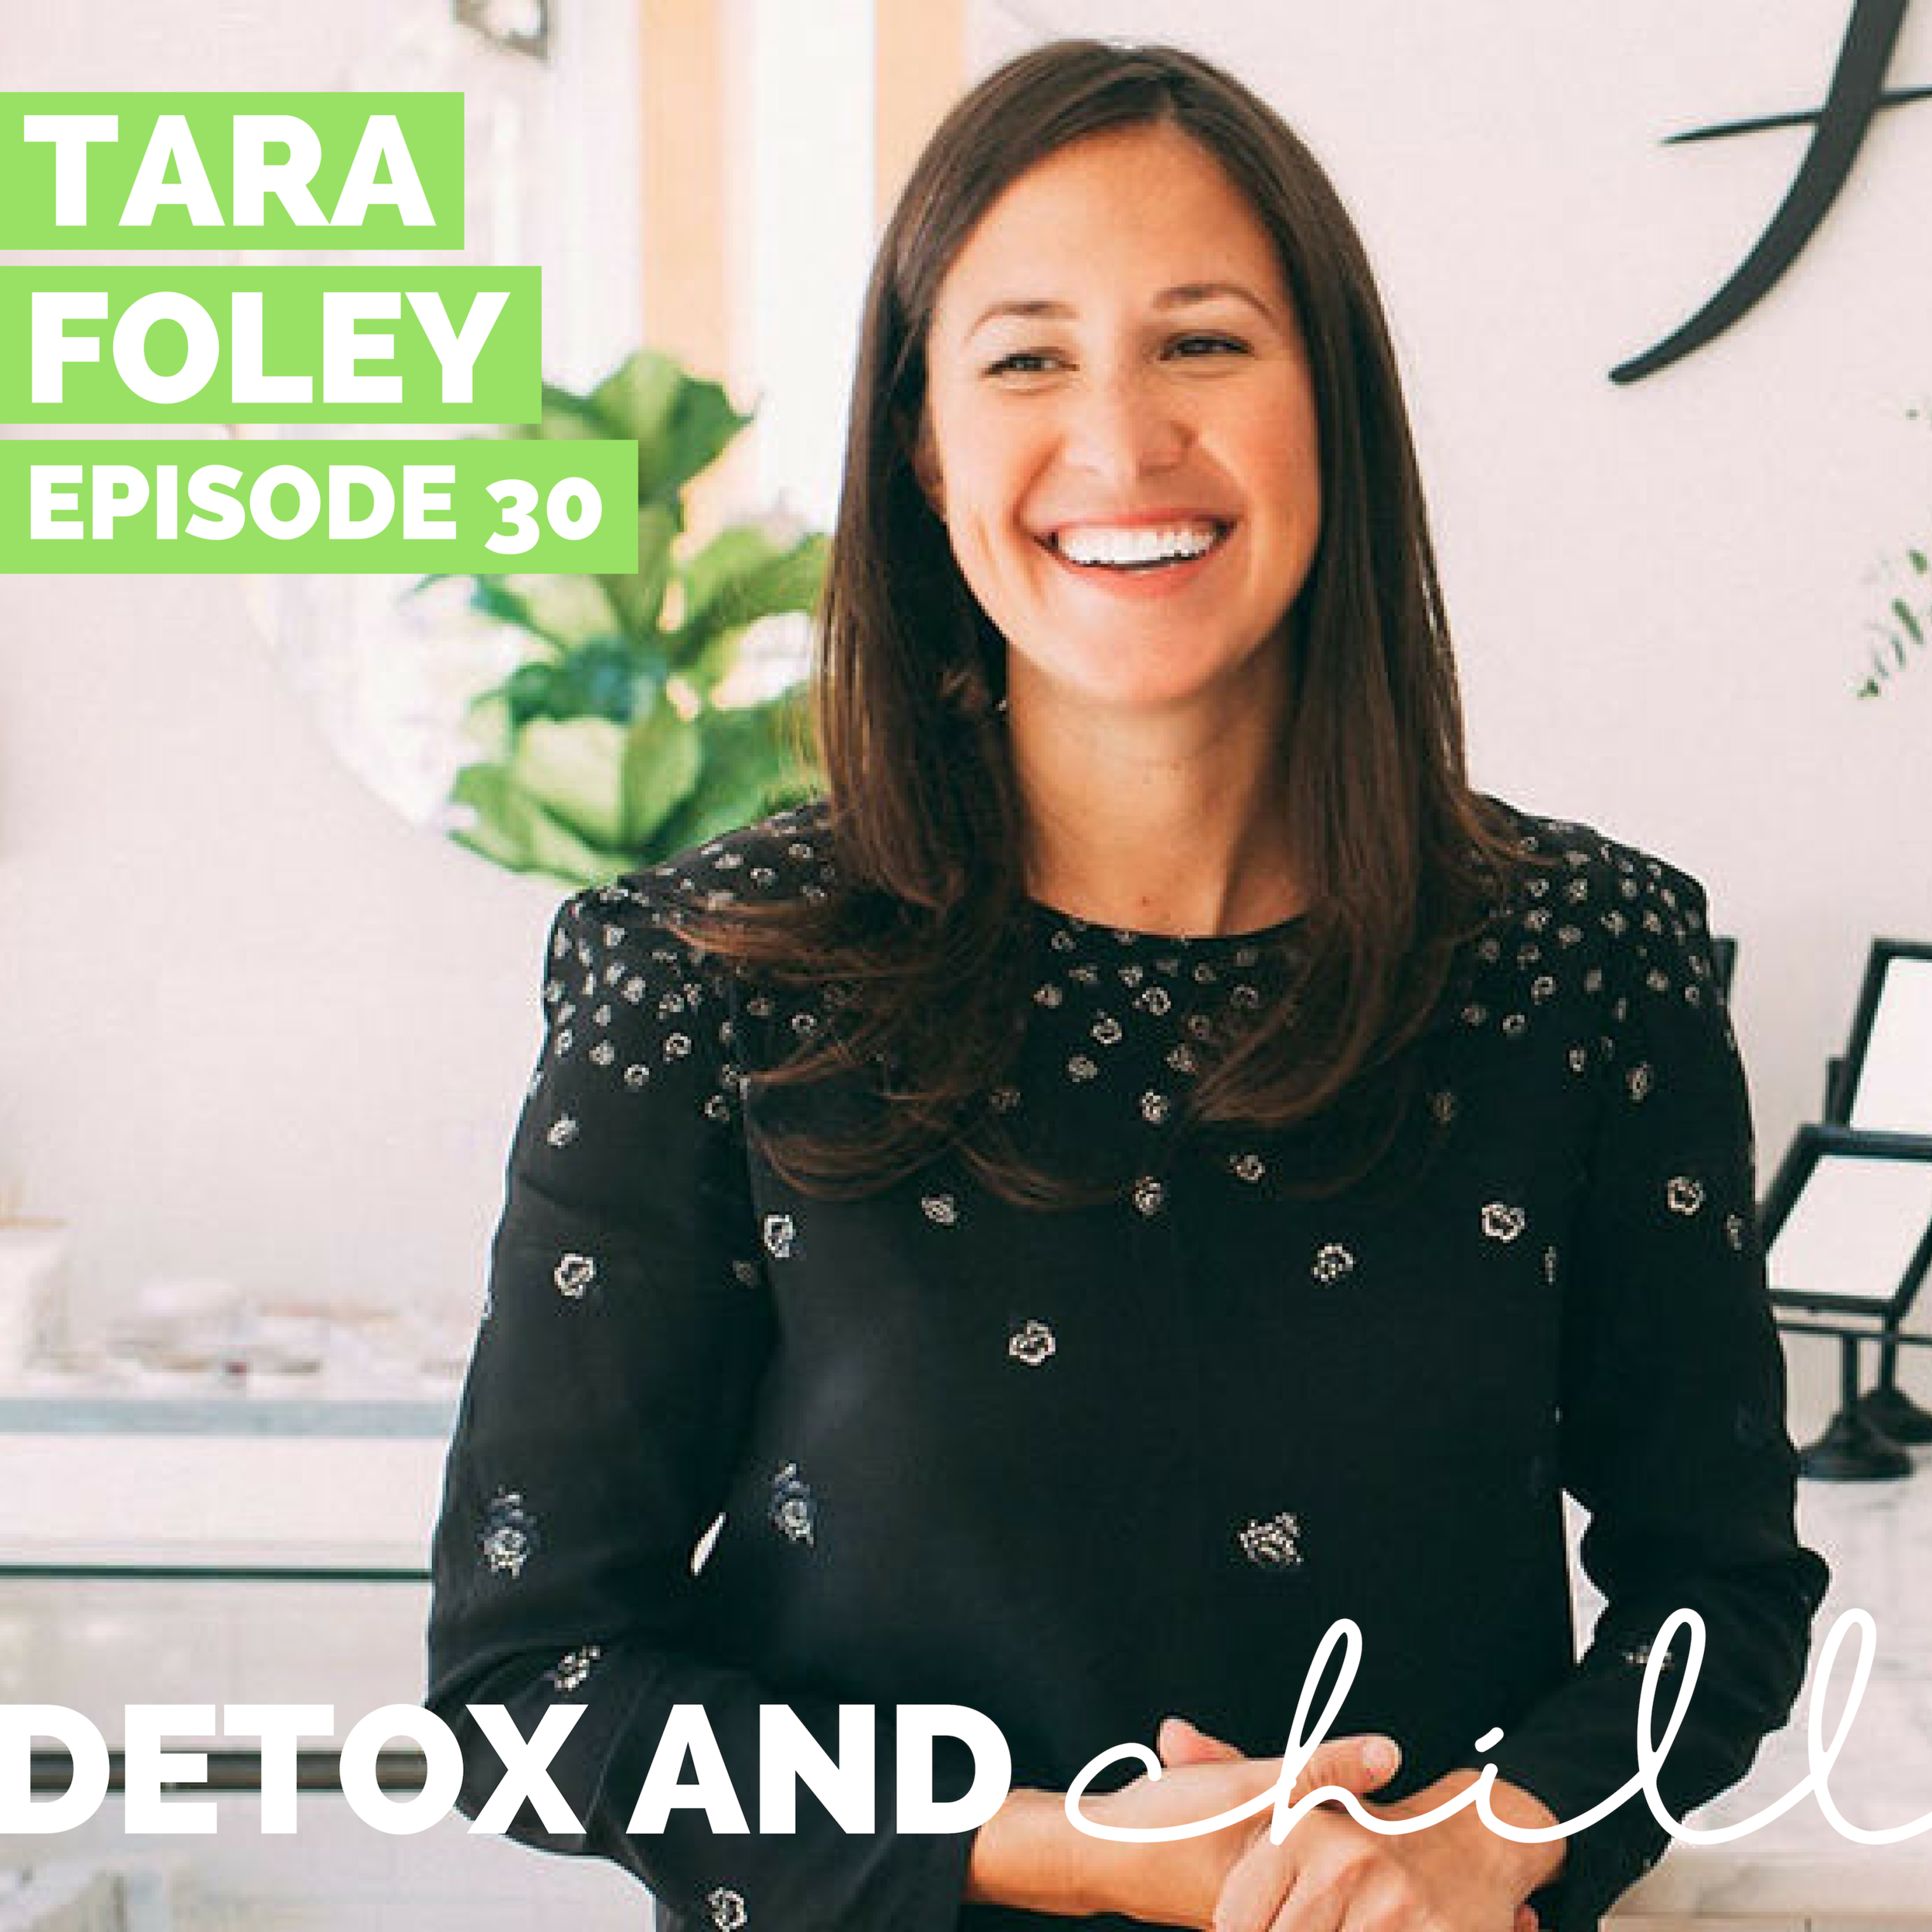 Episode #30: Tara Foley // Founder & CEO of Follain // Building a Unique Brand in the Clean-Beauty Industry - We're blown away that founder and CEO Tara Foley took the time out of her evening to record with us, and share her entrepreneurial story.Follain is an independent retailer that thinks about the clean beauty industry differently. The brand is built on founder Tara Foley's passion for safe ingredients and desire to act as a platform for the niche makers that share her perspective in the non-toxic personal care movement. Follain vigorously vets brands based on the highest standards of performance and health to feature a passionately selected portfolio of skincare, hair care, and cosmetic products for their shoppers.Before Follain, Tara researched safe and sustainable skincare, apprenticing on an organic lavender farm in France, and with a private label skin care company in Maine. With degrees in public policy and business, Tara's vision, passion, and activism fuel Follain's growth, and its mission of improving the health and lives of others.In this episode, we talk about Tara's journey from working a job that she wasn't fully passionate about, to diving headfirst into business school and winning a business proposal to open her retail storefront.We also talk about funding your own business. We were so excited that Tara was so open and honest with us regarding her experience with investors and raising capital. So fascinating and impressive.Keep an eye on Follain moving forward as they continue to expand nationwide. We have a feeling they're going to be HUGE.Check out Tara's links here:Tara's InstagramFollain's InstagramFollain's website (so many amazing goodies!)We are so excited to hear what you think. We'd love to continue this conversation in our Facebook group and on Instagram. Our Facebook group is a safe space for anyone who joins, so don't forget to check us out there. Just search *SUPER EXLUSIVE* Detox & Chill Podcast Group. As always, don't forget to fol